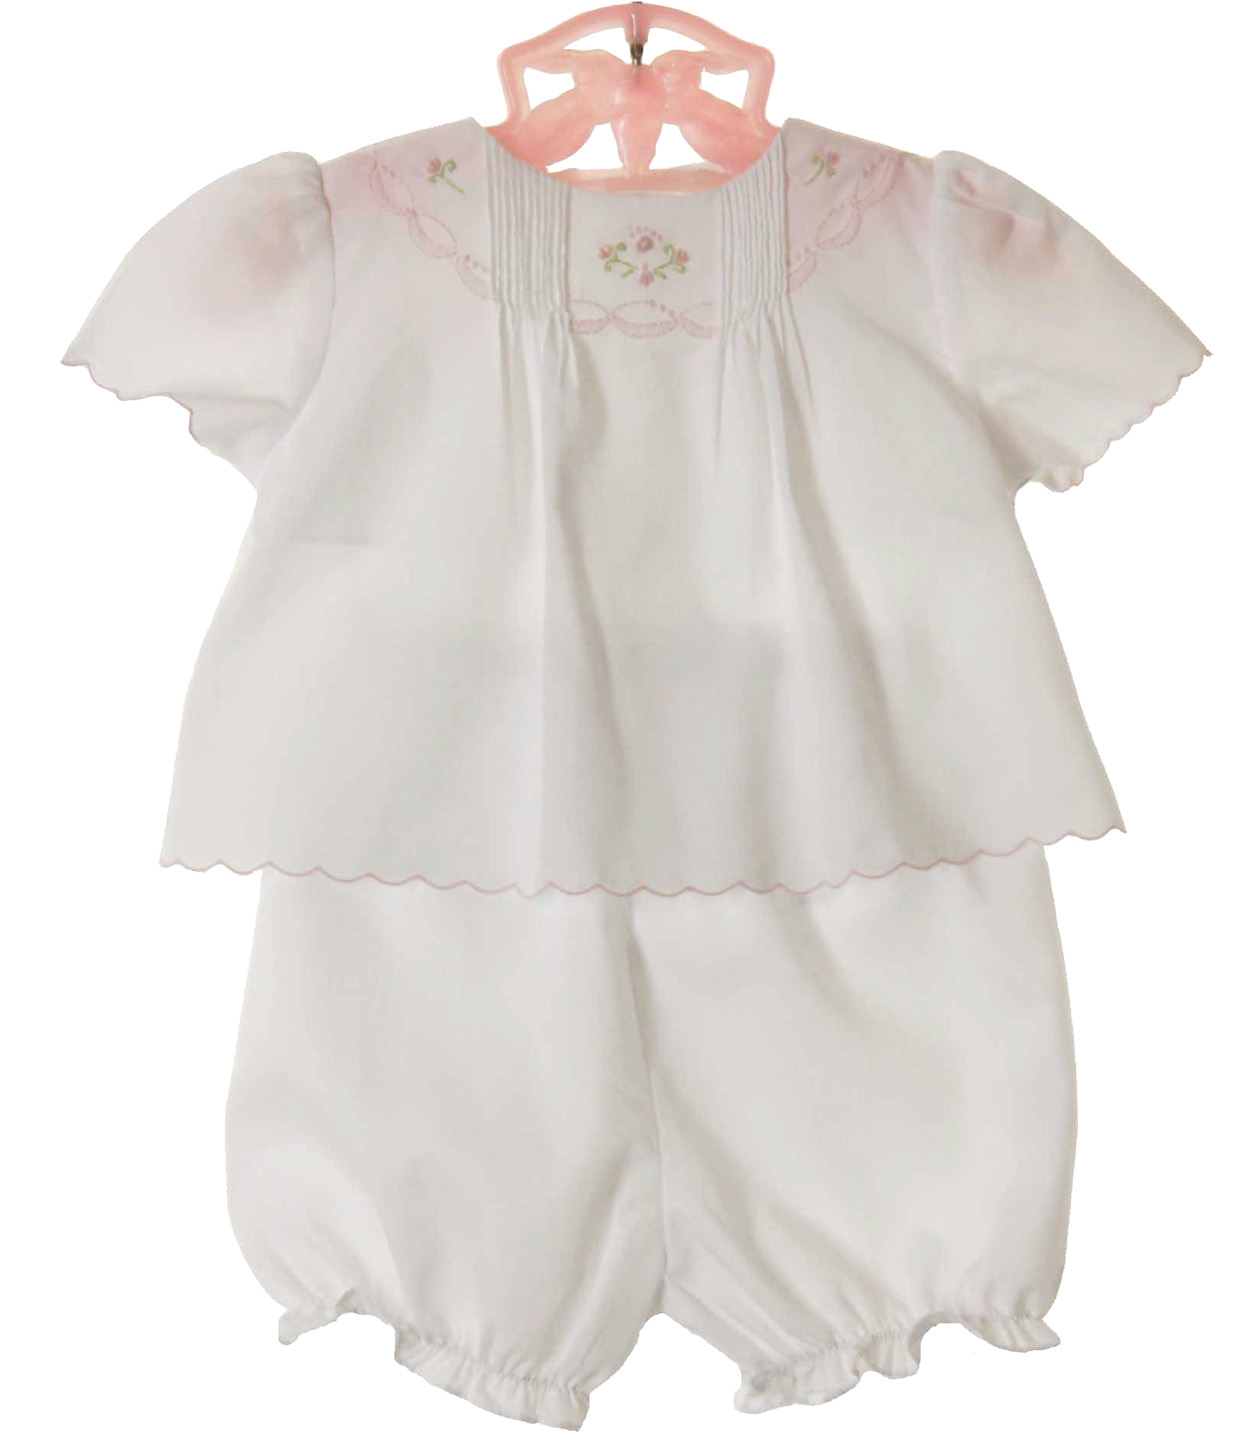 Petit Ami White Diaper Set With Pink Embroidery,white